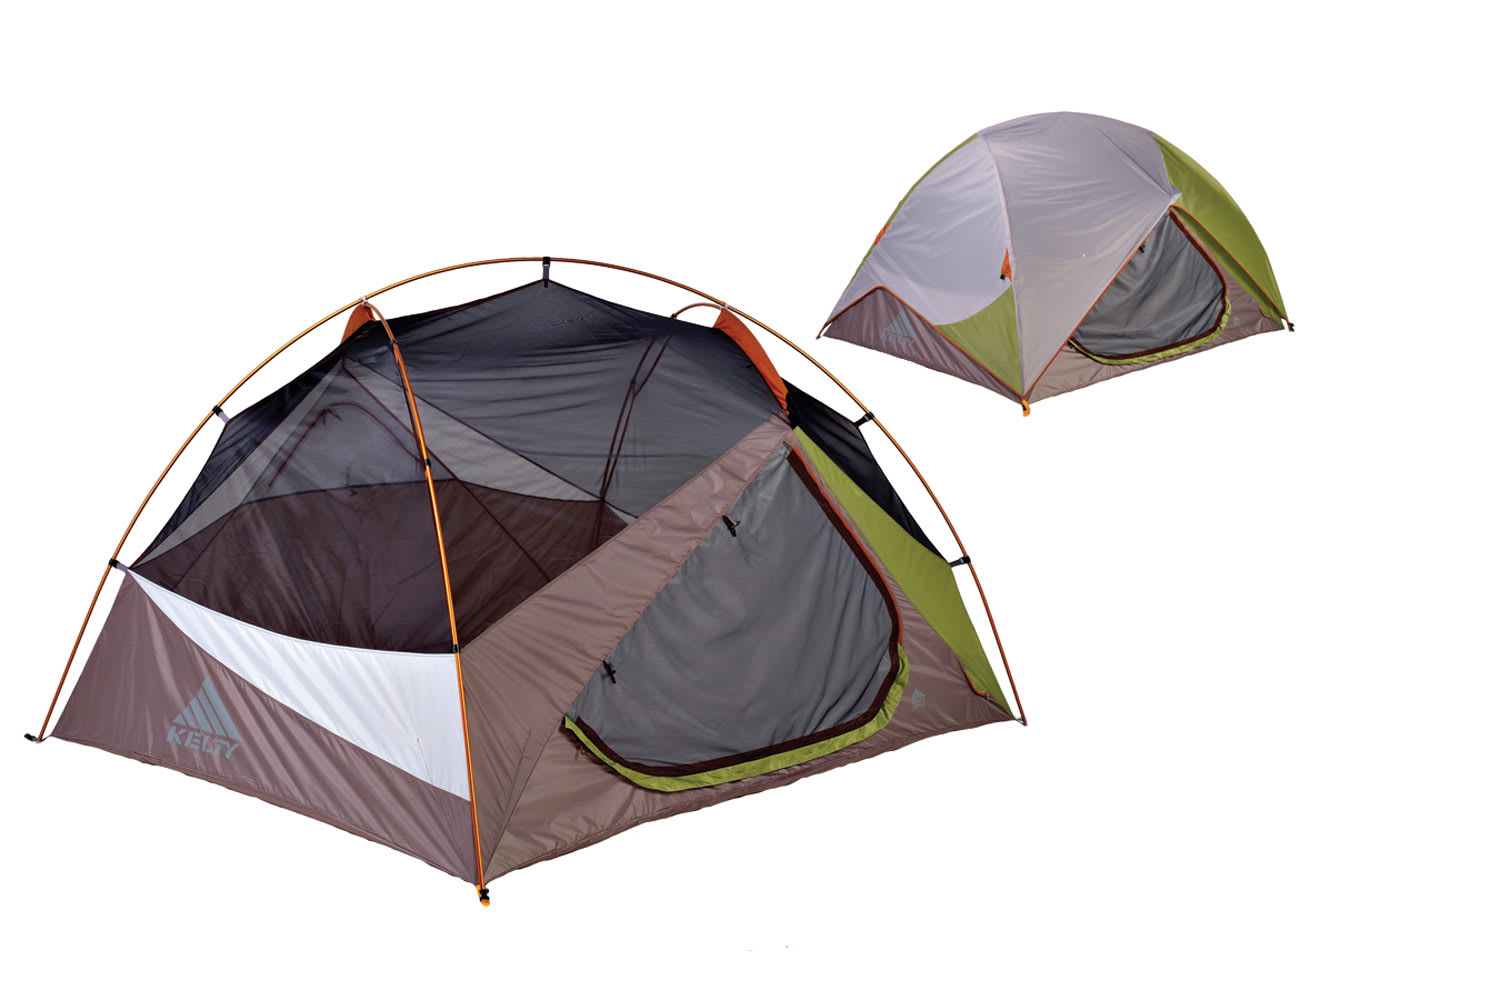 Kelty Eden 4 Person Tent - thumbnail 1  sc 1 st  The House & On Sale Kelty Eden 4 Person Tent up to 75% off